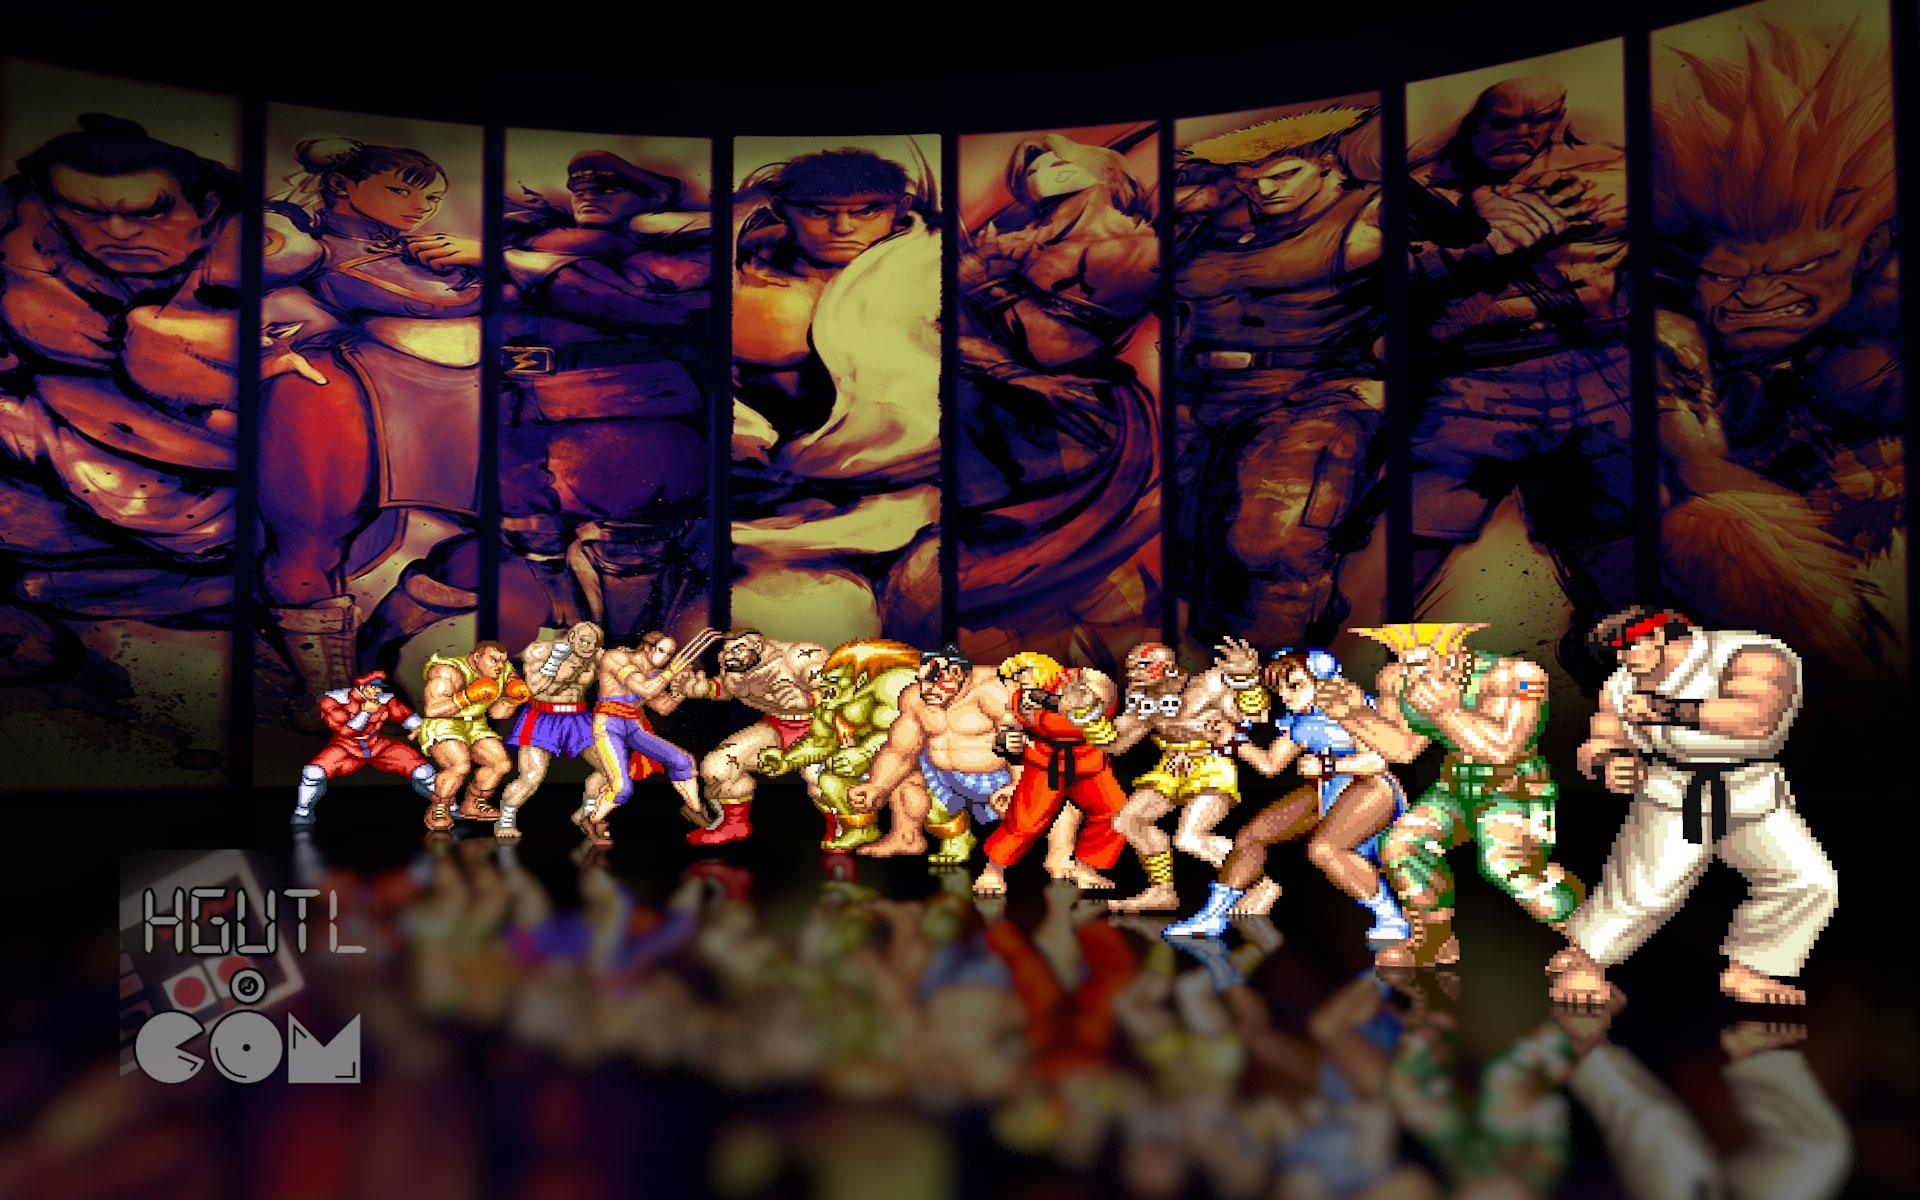 street fighter 2 wallpapers group (71+)